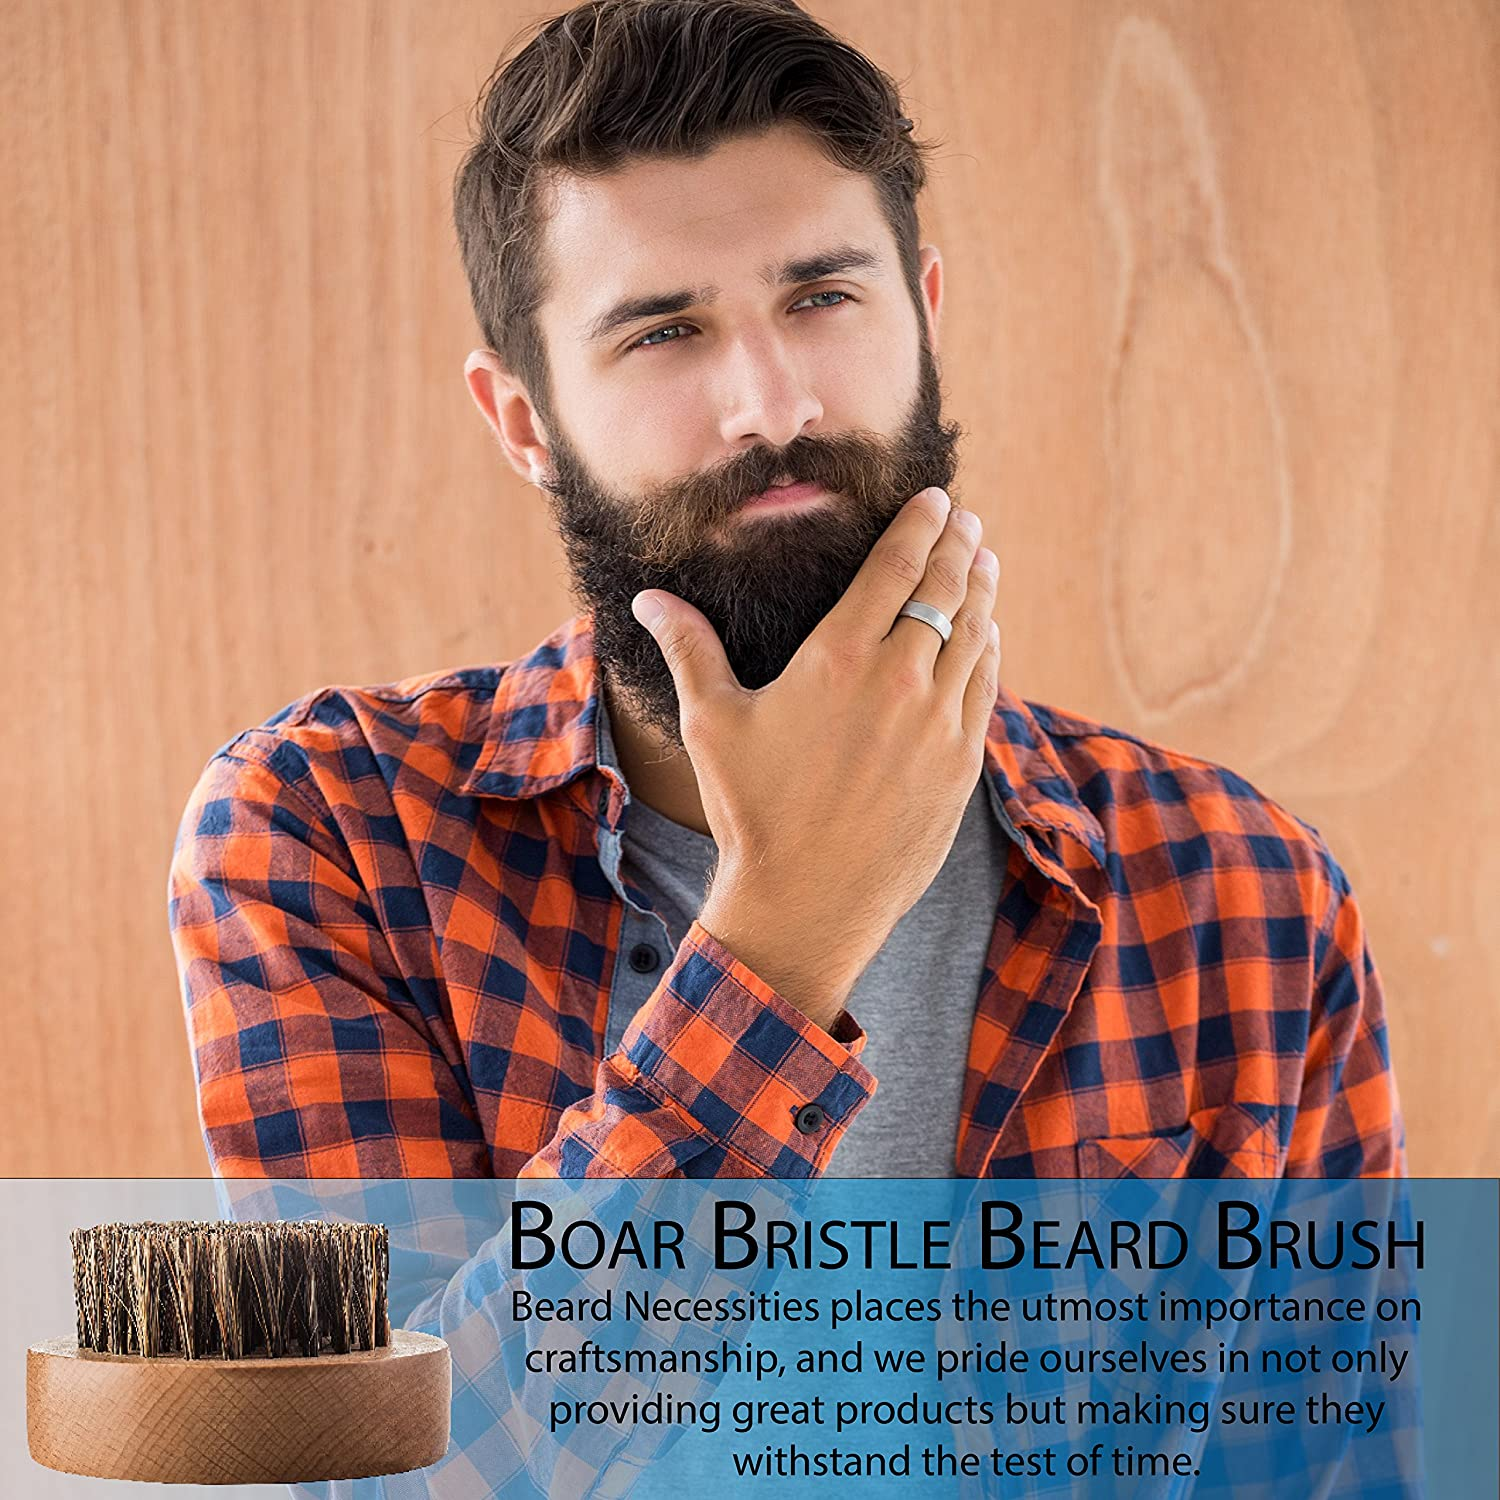 a7b04ca81d81 Beard Brush For Men By Beard Necessities - Made With Pure Boar Bristles and  Bamboo. Add To Any...